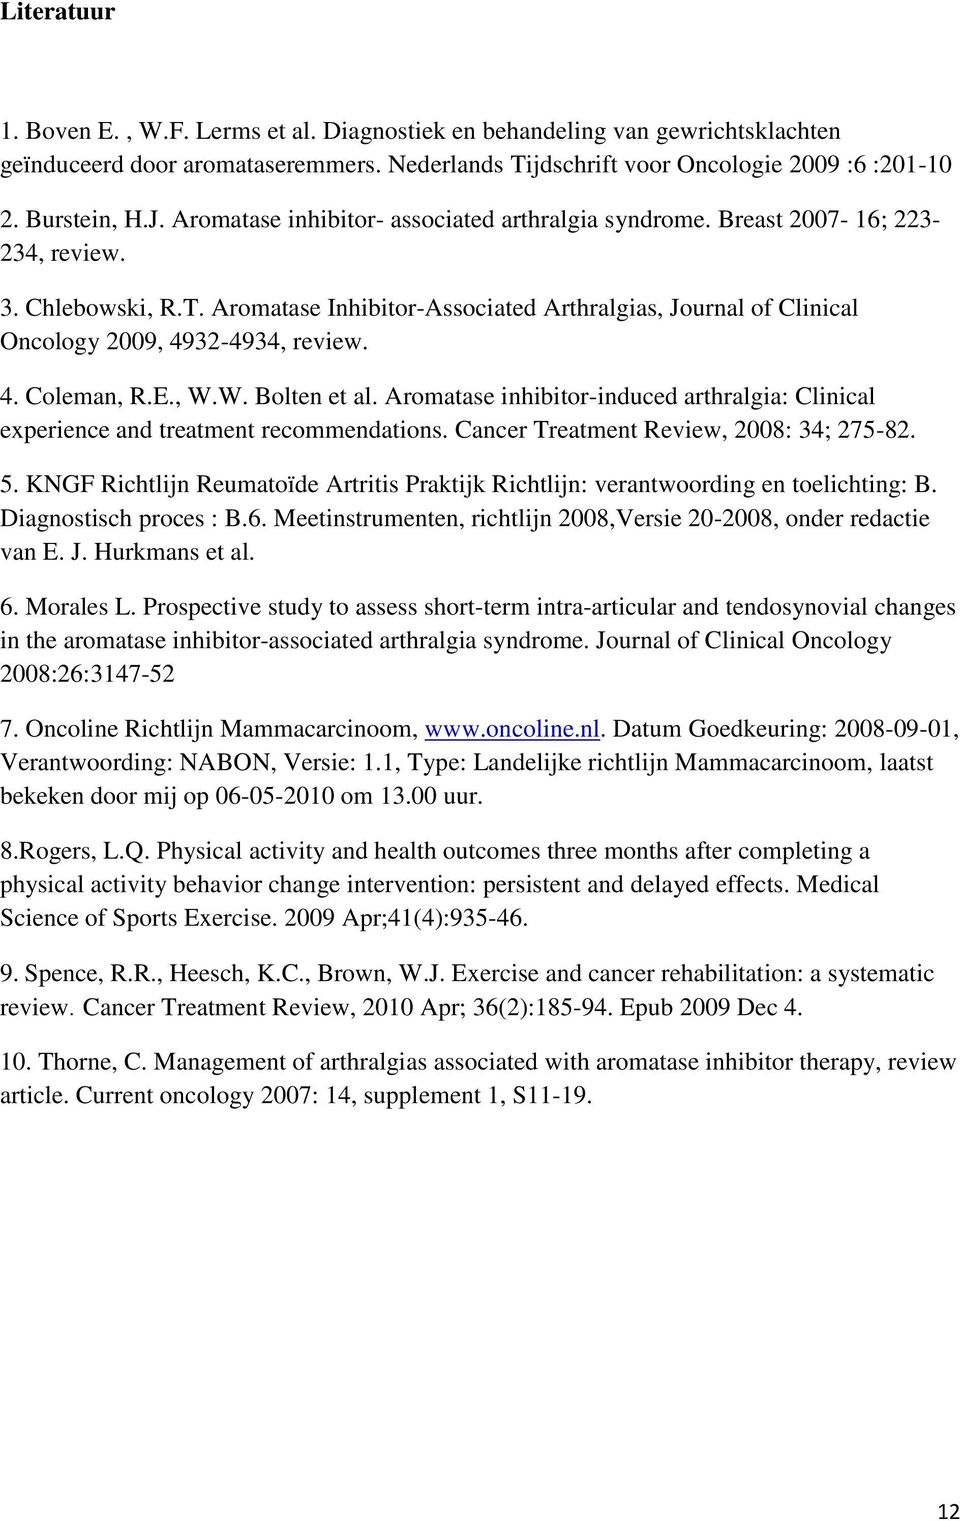 Aromatase Inhibitor-Associated Arthralgias, Journal of Clinical Oncology 2009, 4932-4934, review. 4. Coleman, R.E., W.W. Bolten et al.